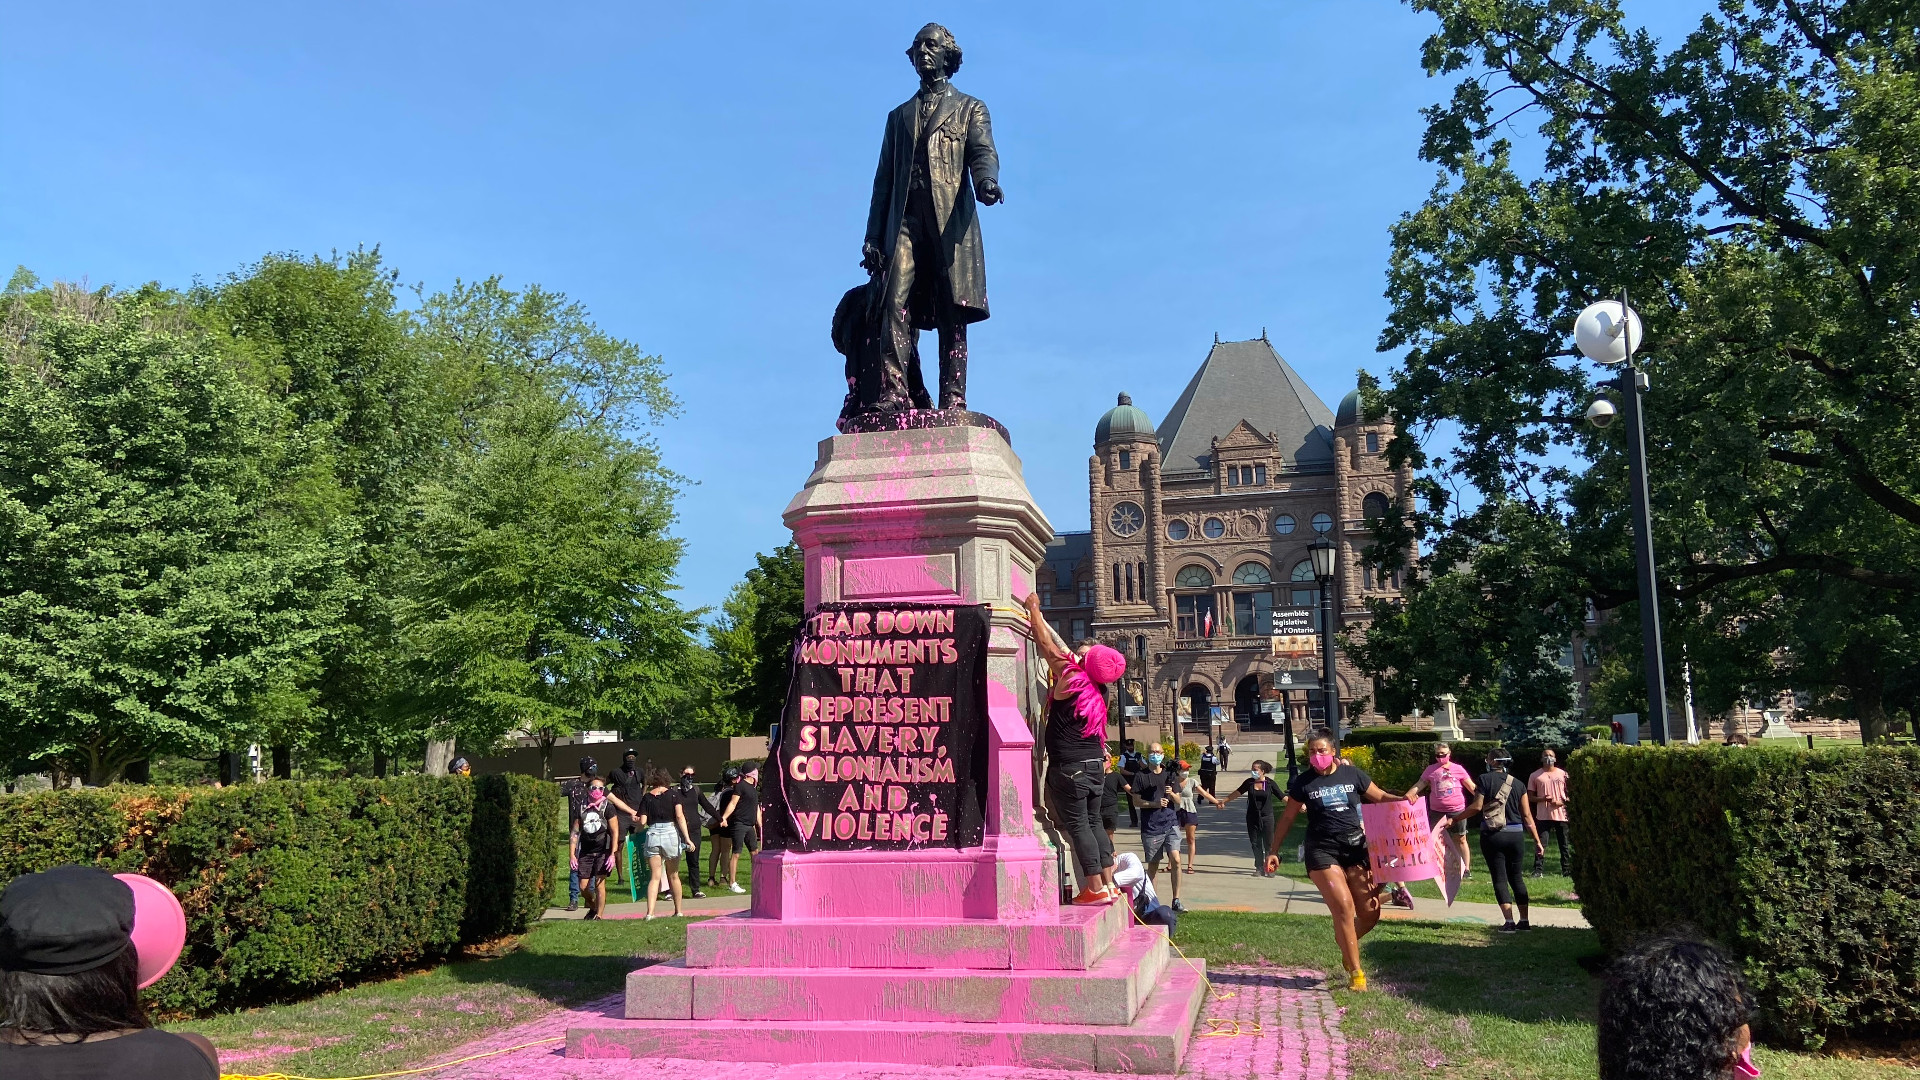 Macdonald statue in Queen's Park vandalized during demonstrations